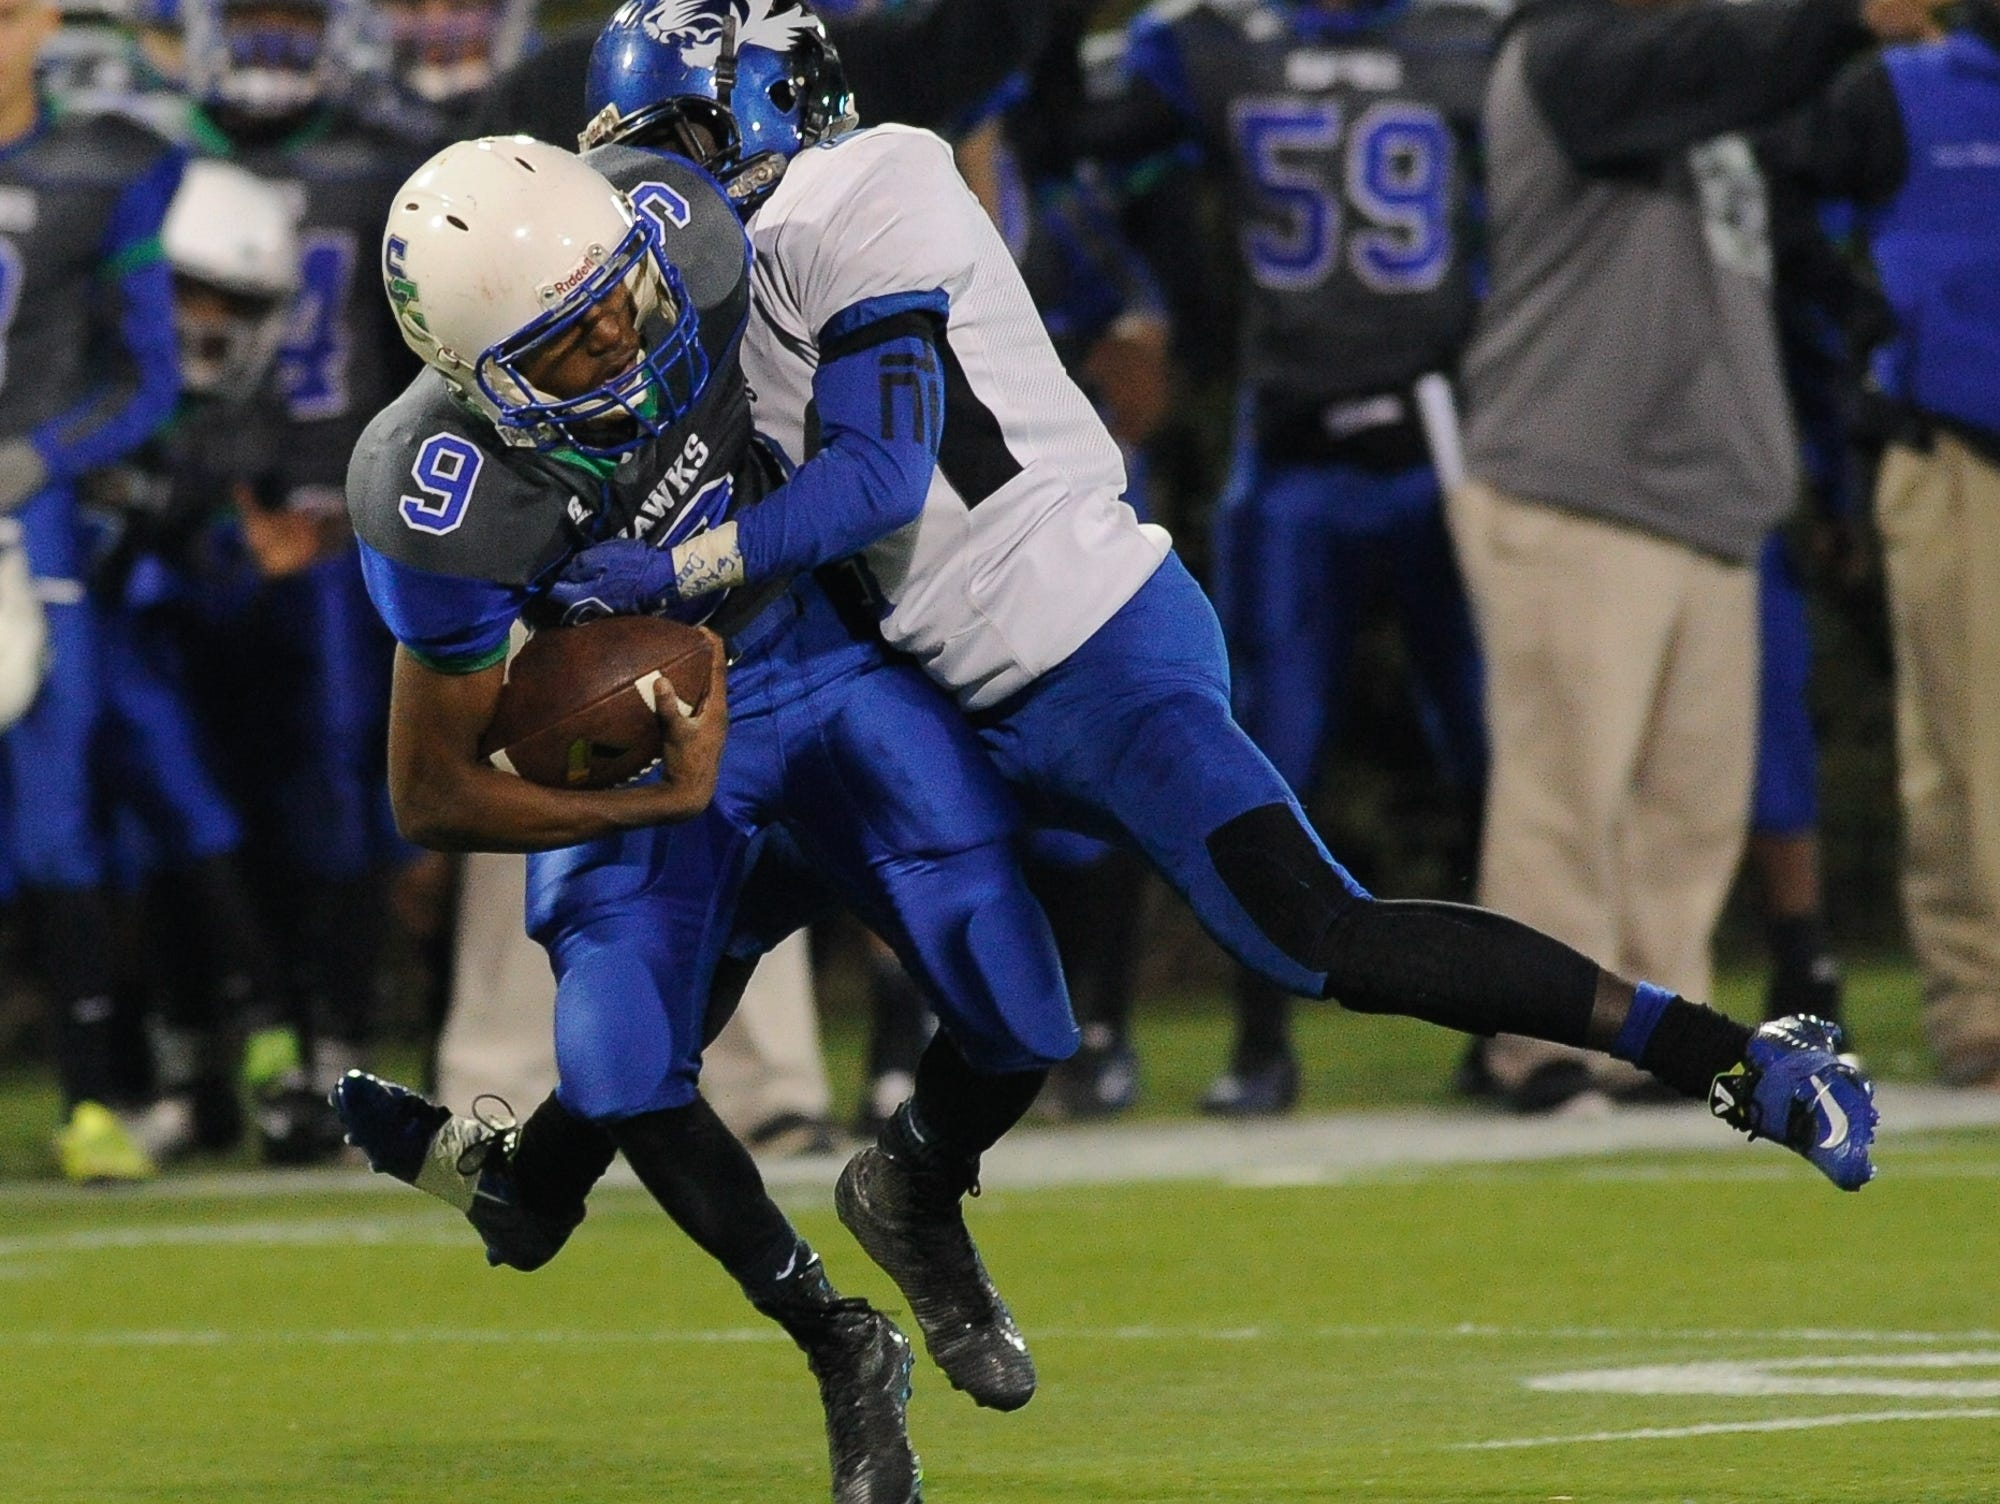 Howard's #2 Na'Quan Watson tackles St. George's quarterback #9 Tordell Kemp during the Division II championship.